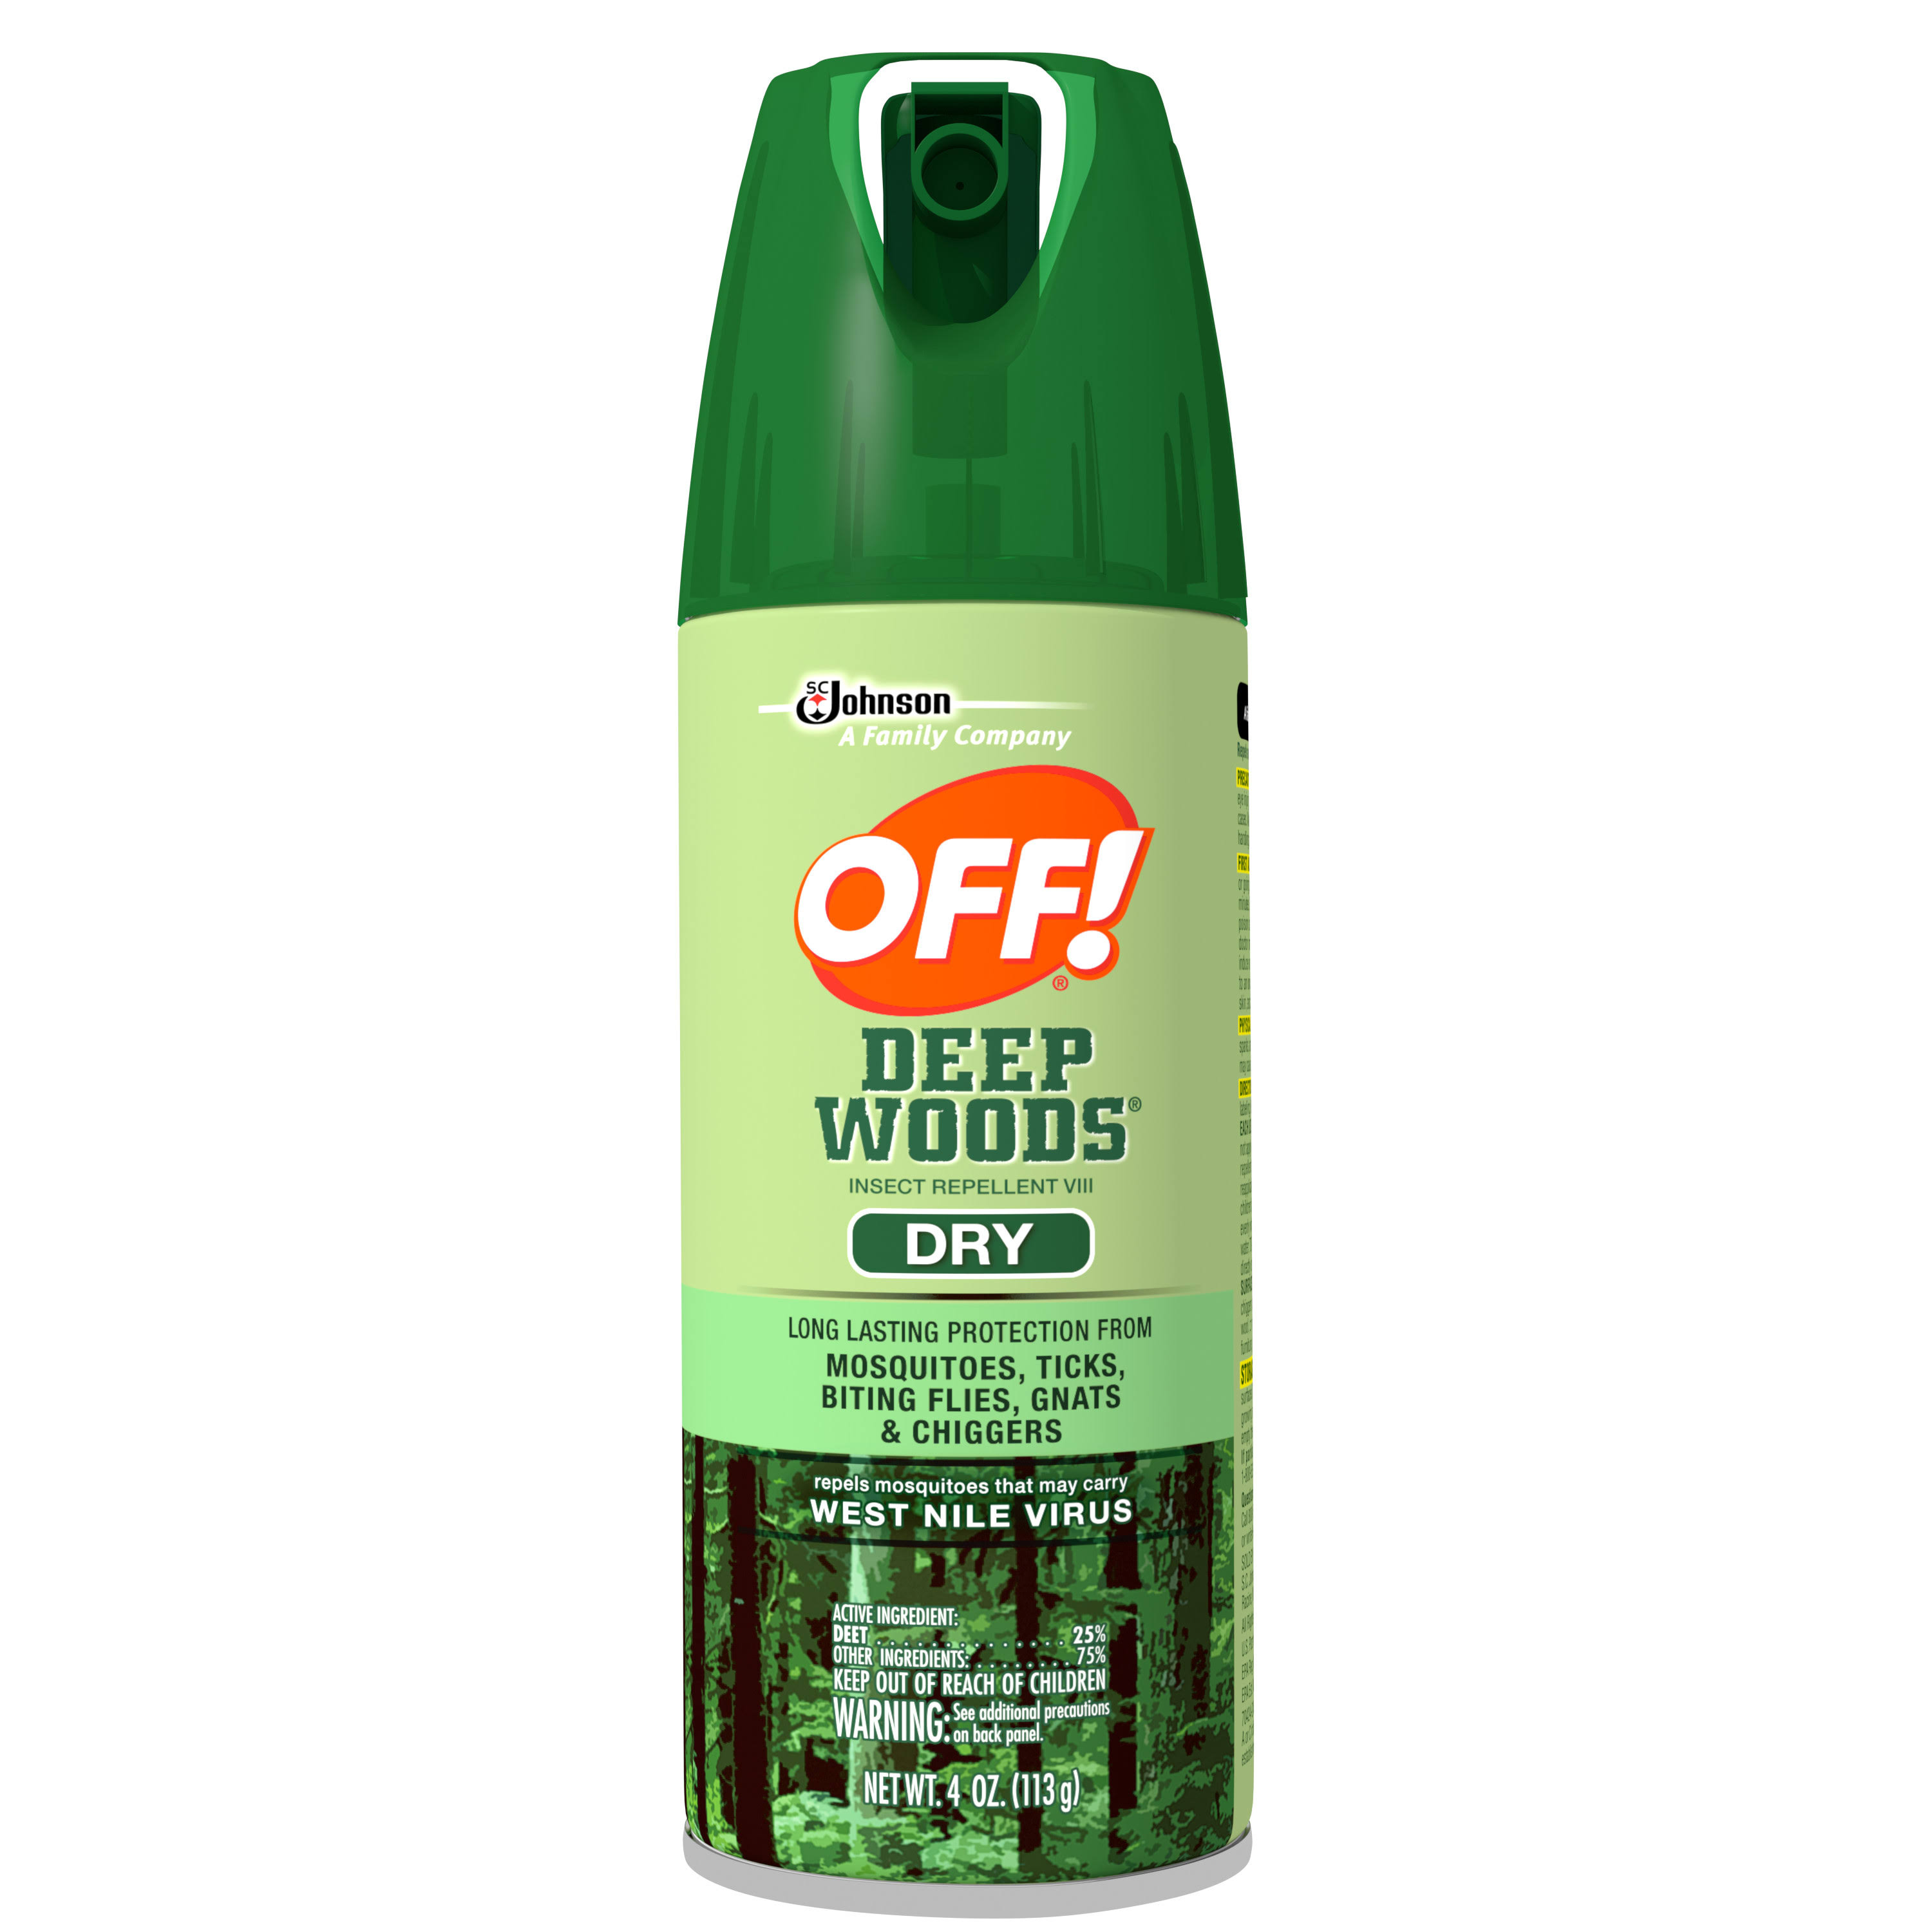 SC Johnson Off Deep Woods Dry Insect Repellent - 4oz